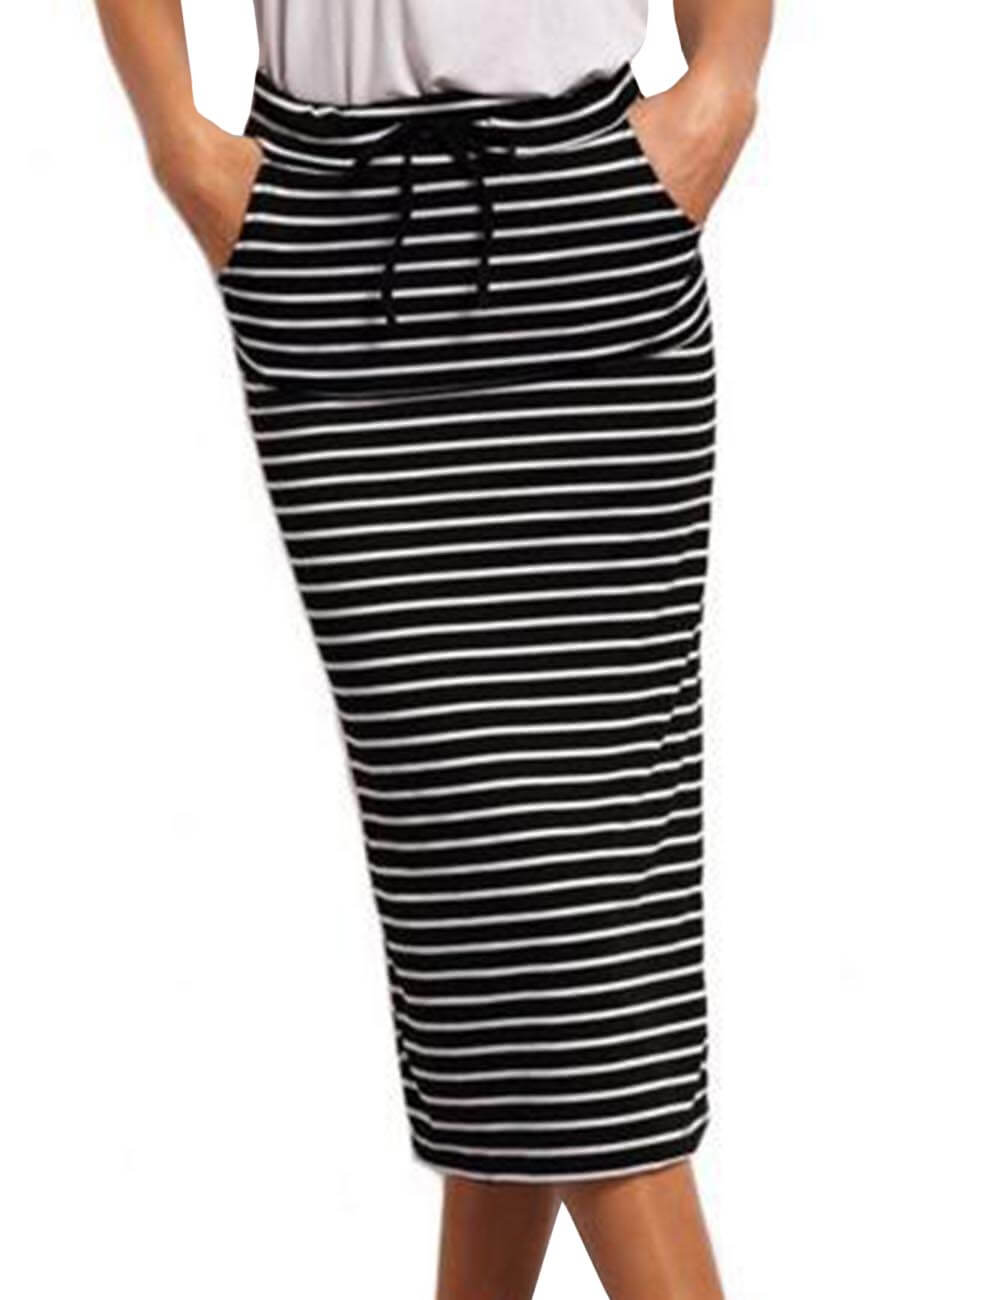 Womens Knee Length Striped Tie Front High Waist Bodycon Pencil Midi Sheath Skirts Plus Size